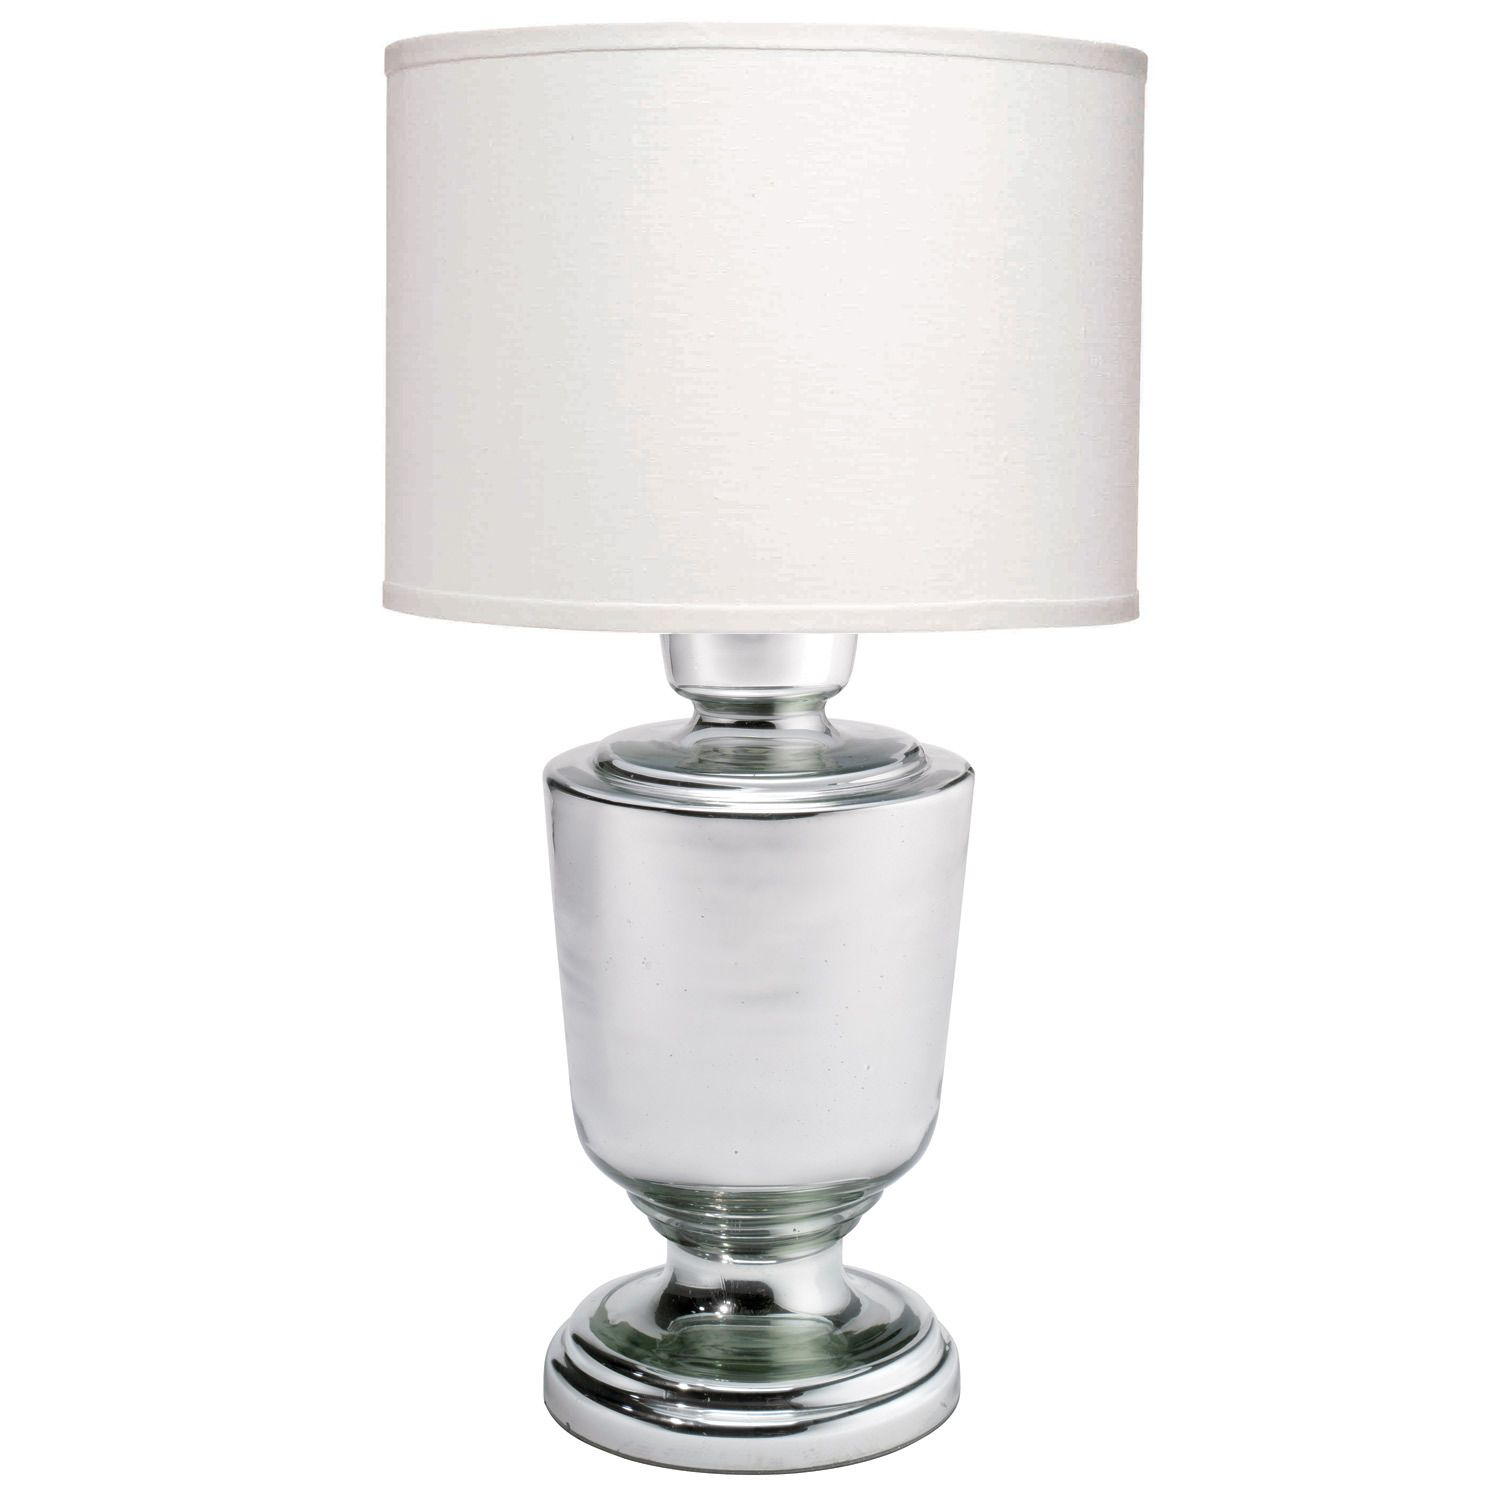 Jamie young lafitte large table lamp base mercury glass lends jamie young lafitte large table lamp base mercury glass lends polished shine to the urn geotapseo Choice Image